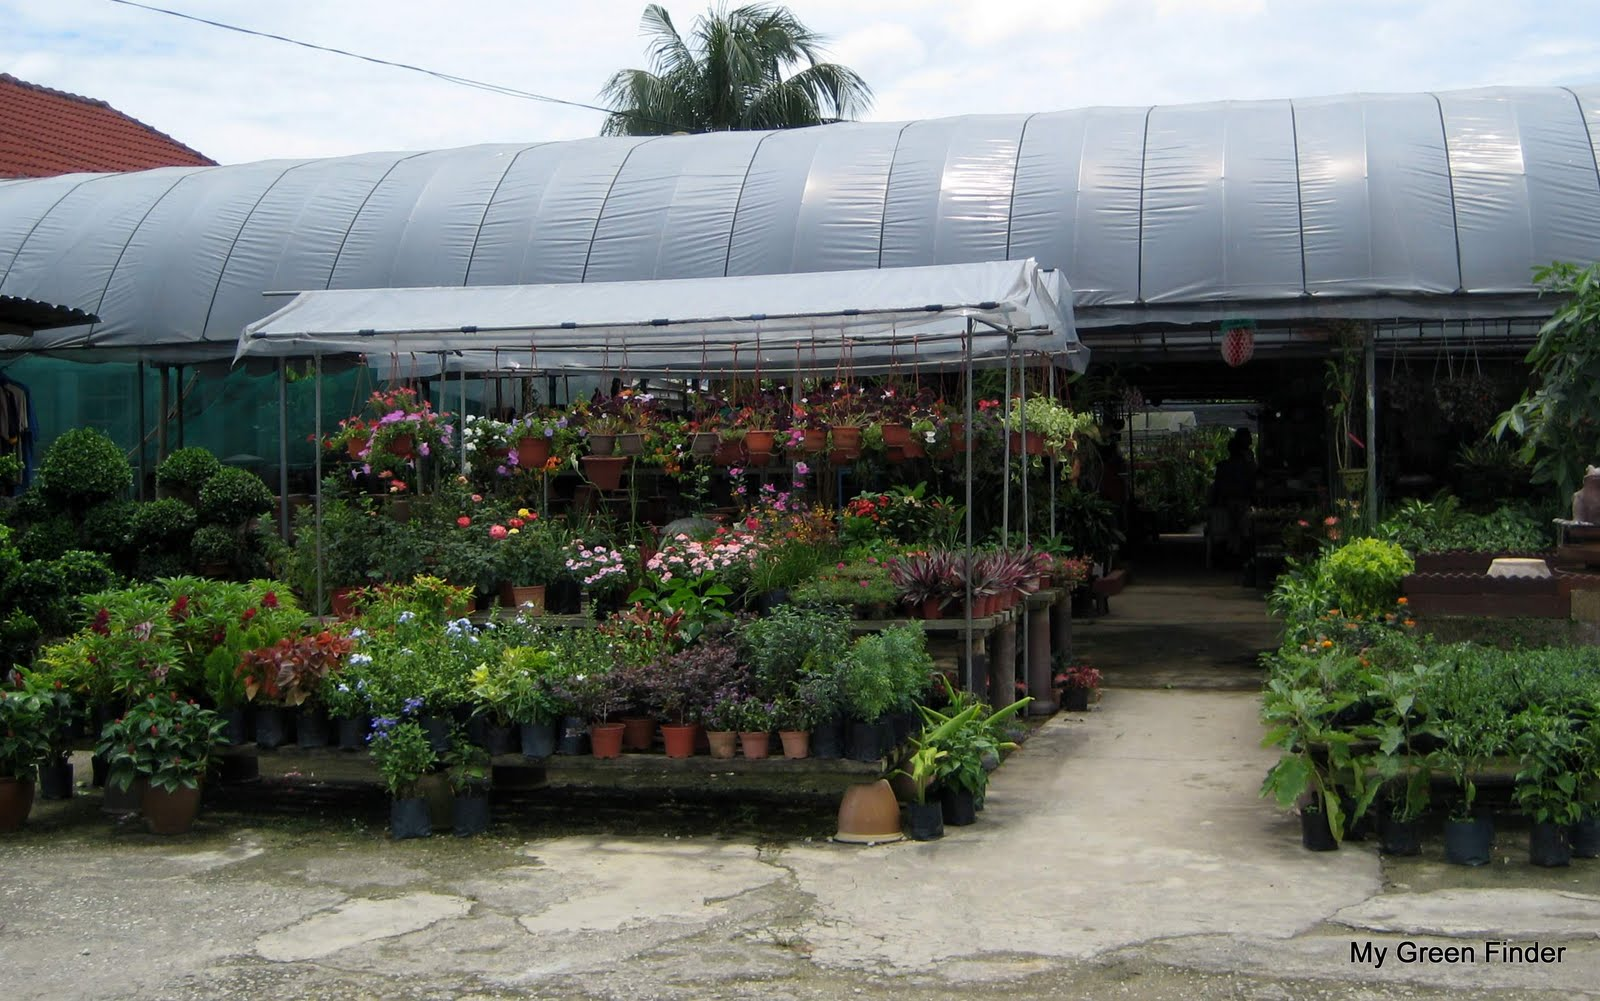 Law Nursery Landscaping Opens From 8 00am To 7 00pm Daily And Has Been In The Business For More Than 10 Years Besides Retailing Plants Operator Also